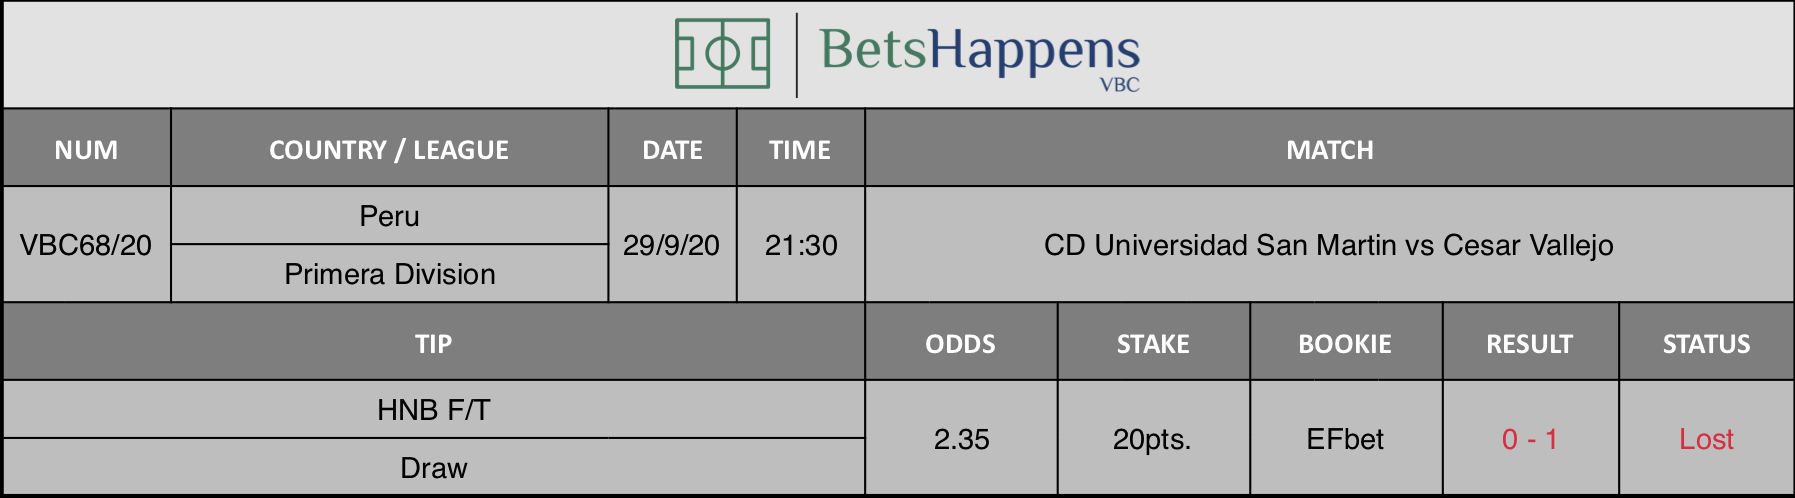 Results of our prediction for the match CD Universidad San Martin vs Cesar Vallejo in which HNB F / T Draw is recommended.